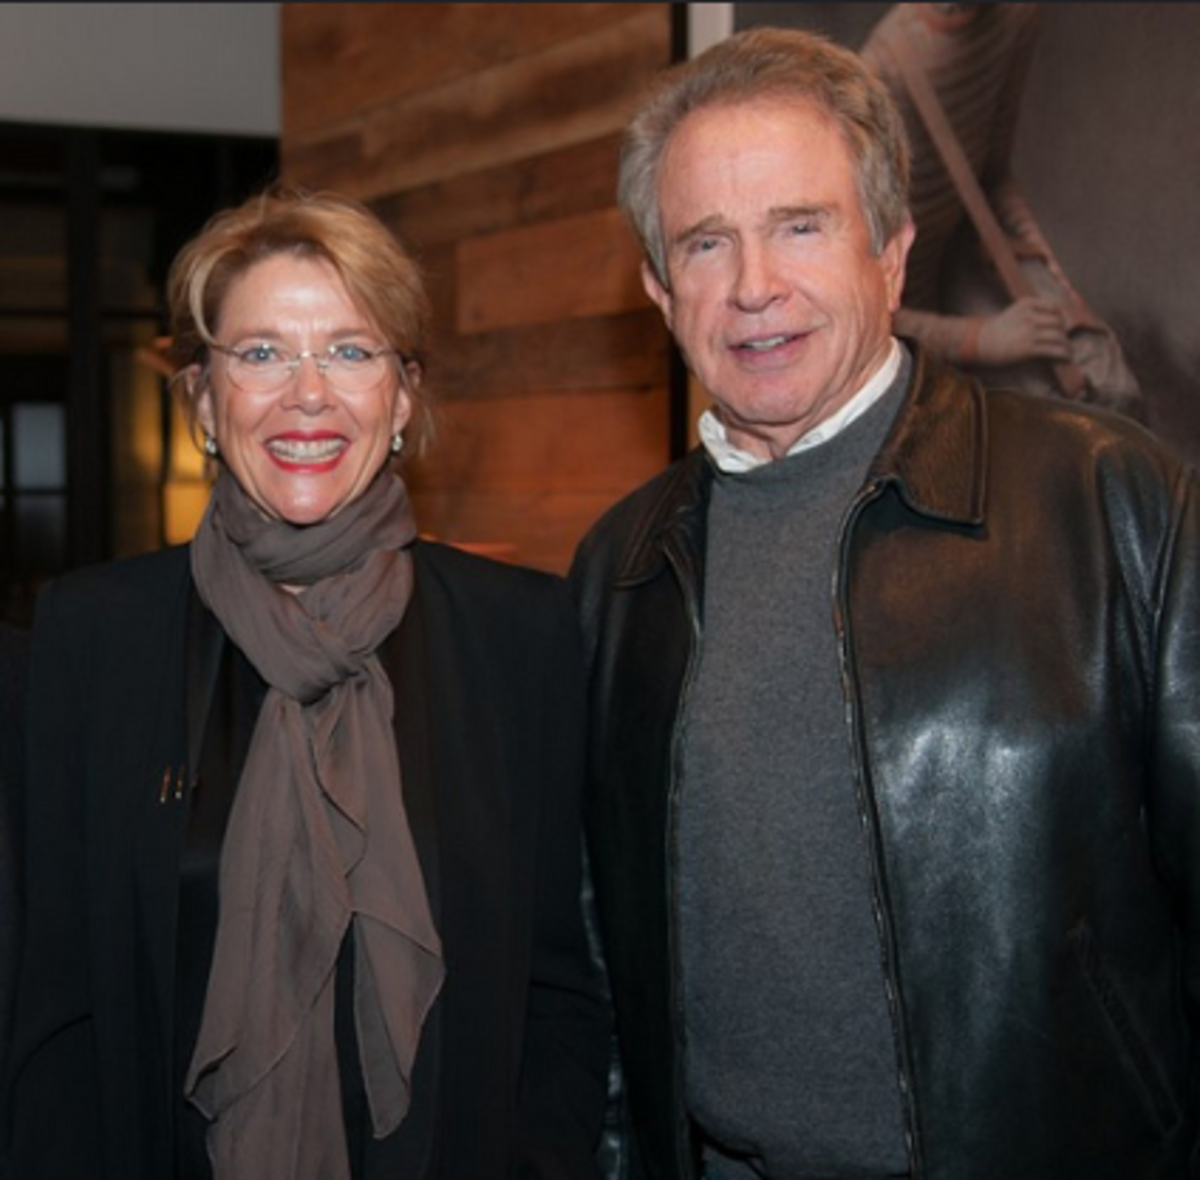 Should Warren Beatty and Annette Bening Be Bullied Into Speaking Out in Support of Their Transgender Son?